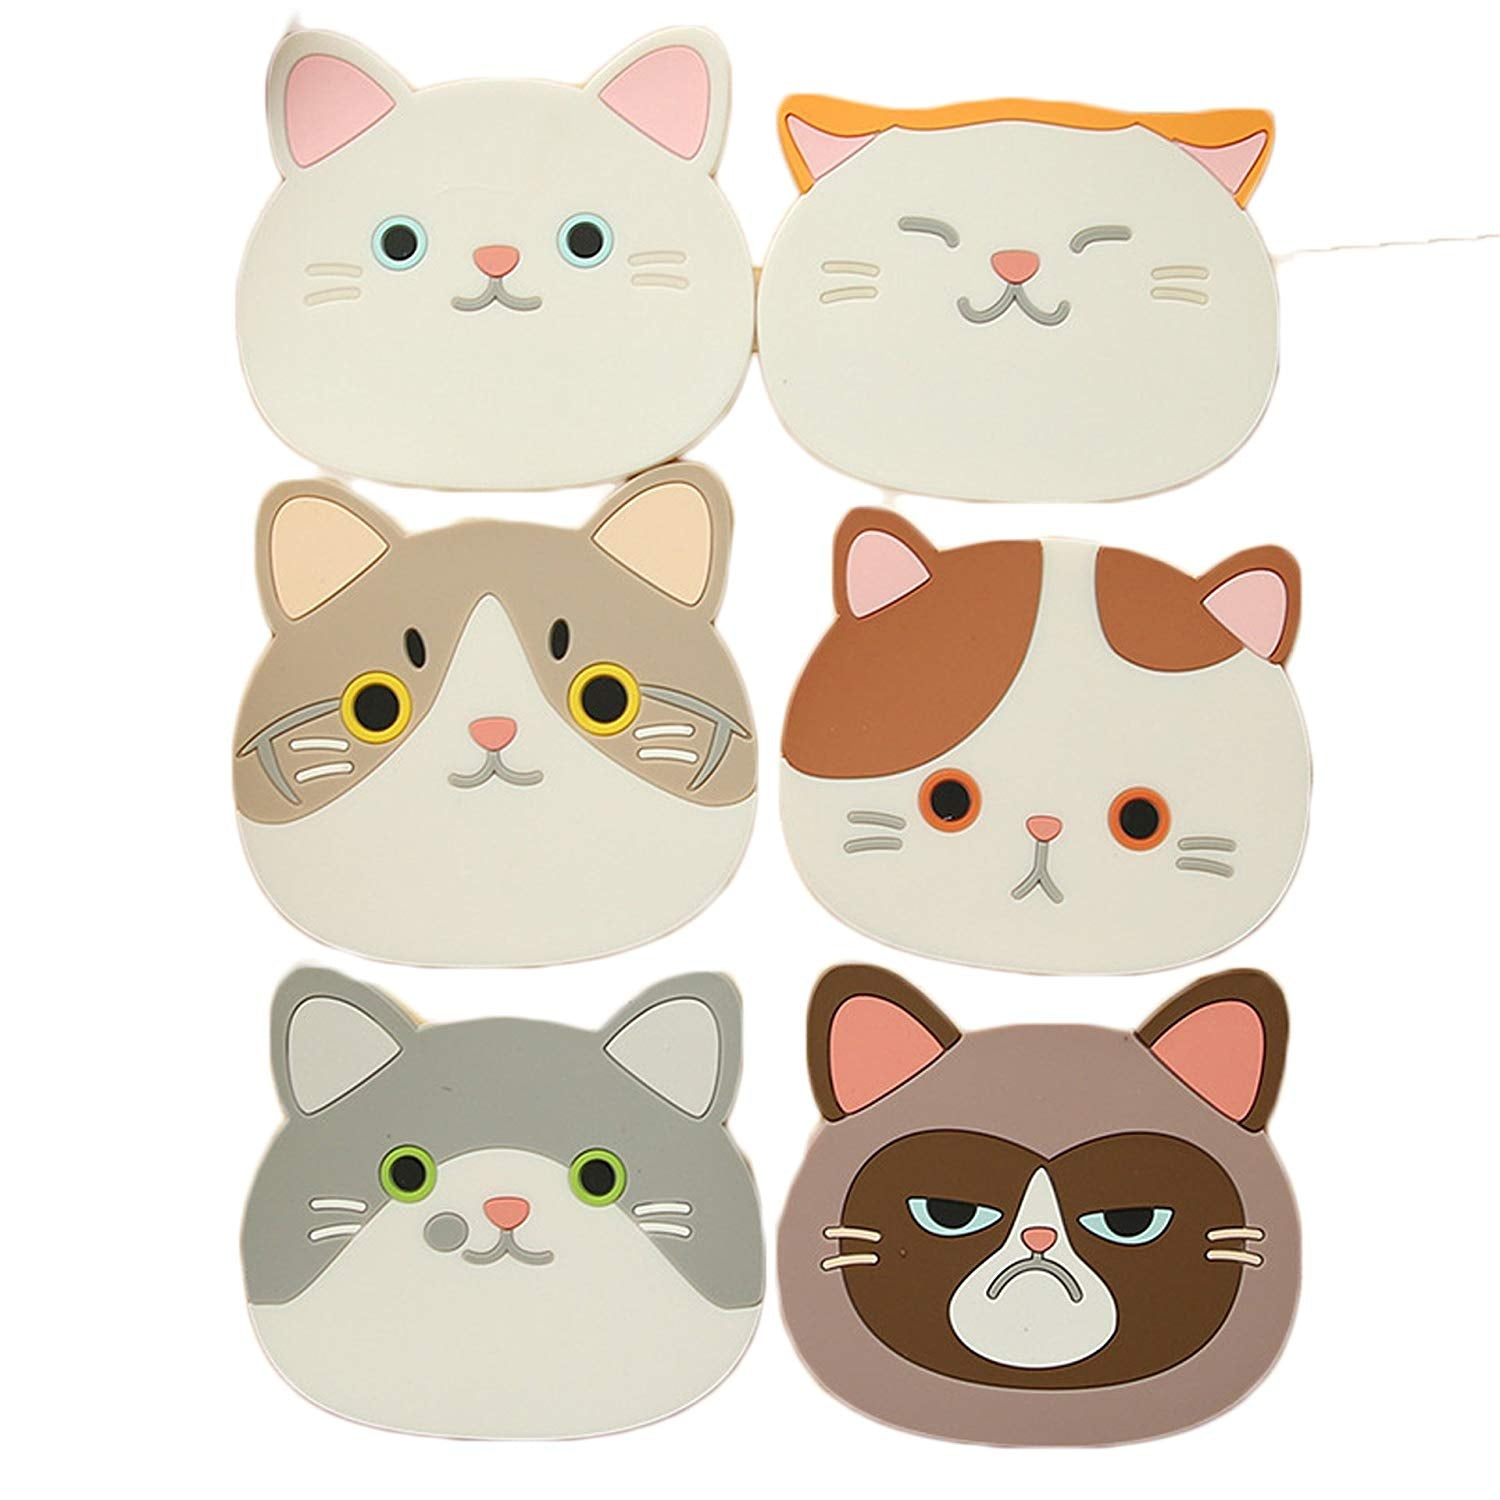 JLHua Finger Ring Silicone Multi-Use Cartoon Cat Trivet (Set of 6 Pack) Insulated Flexible Durable Non Slip Hot Pads and Coasters Cup Mats